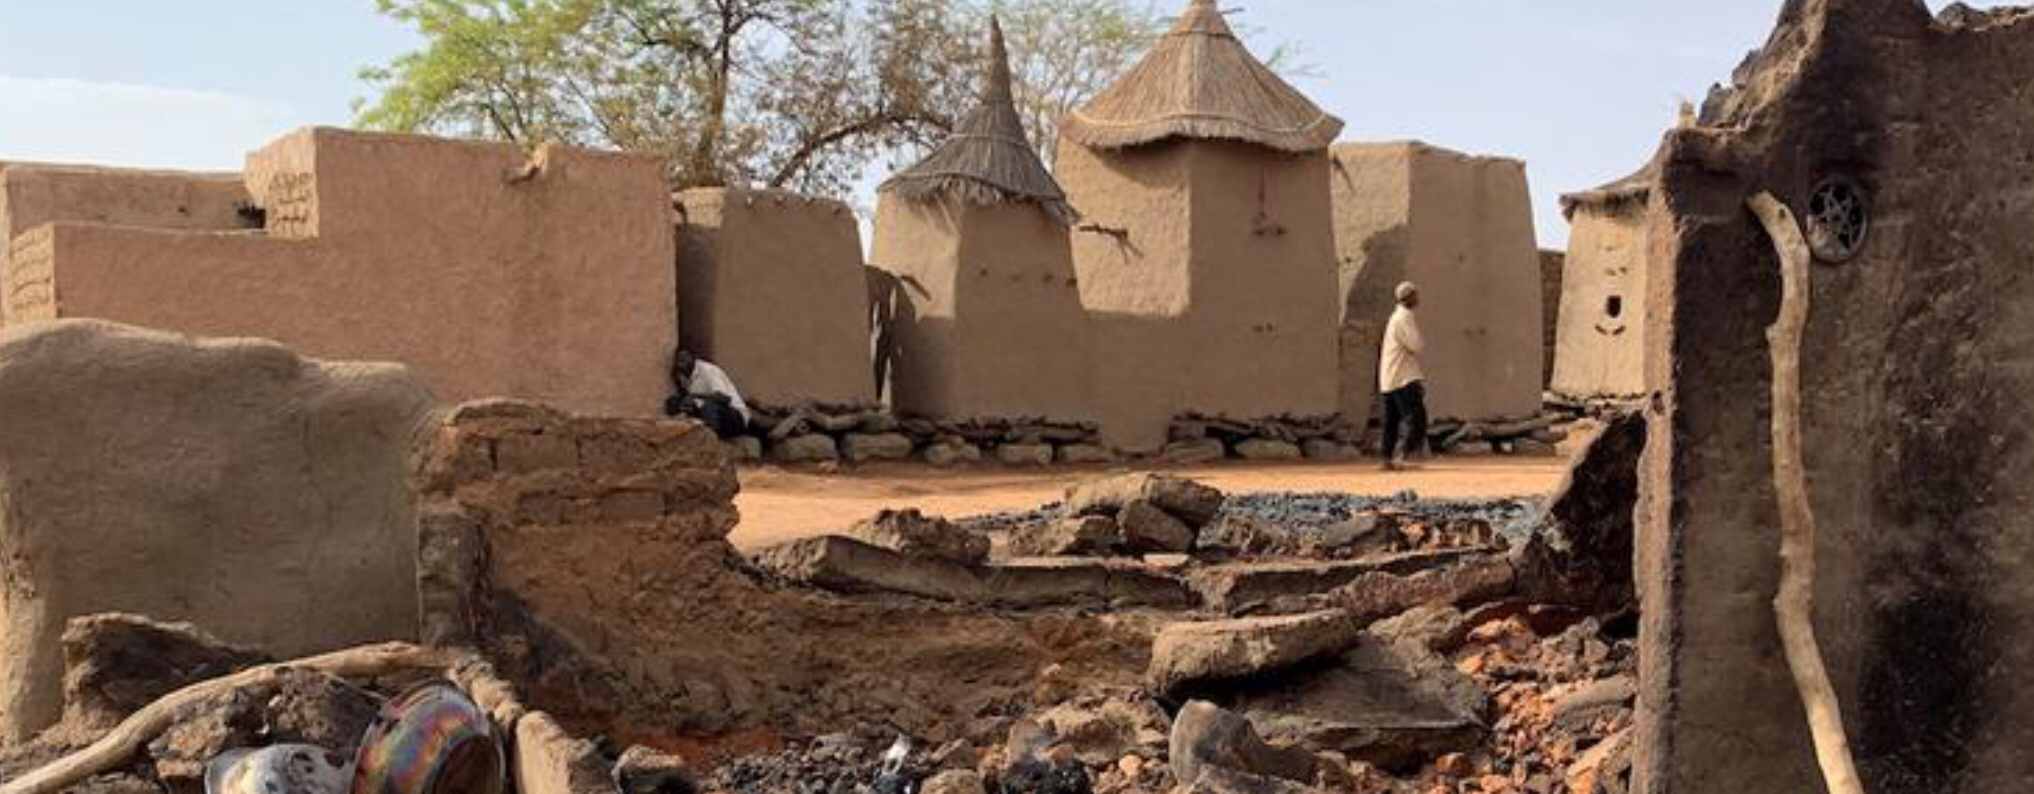 Mali: Dogon village attacked